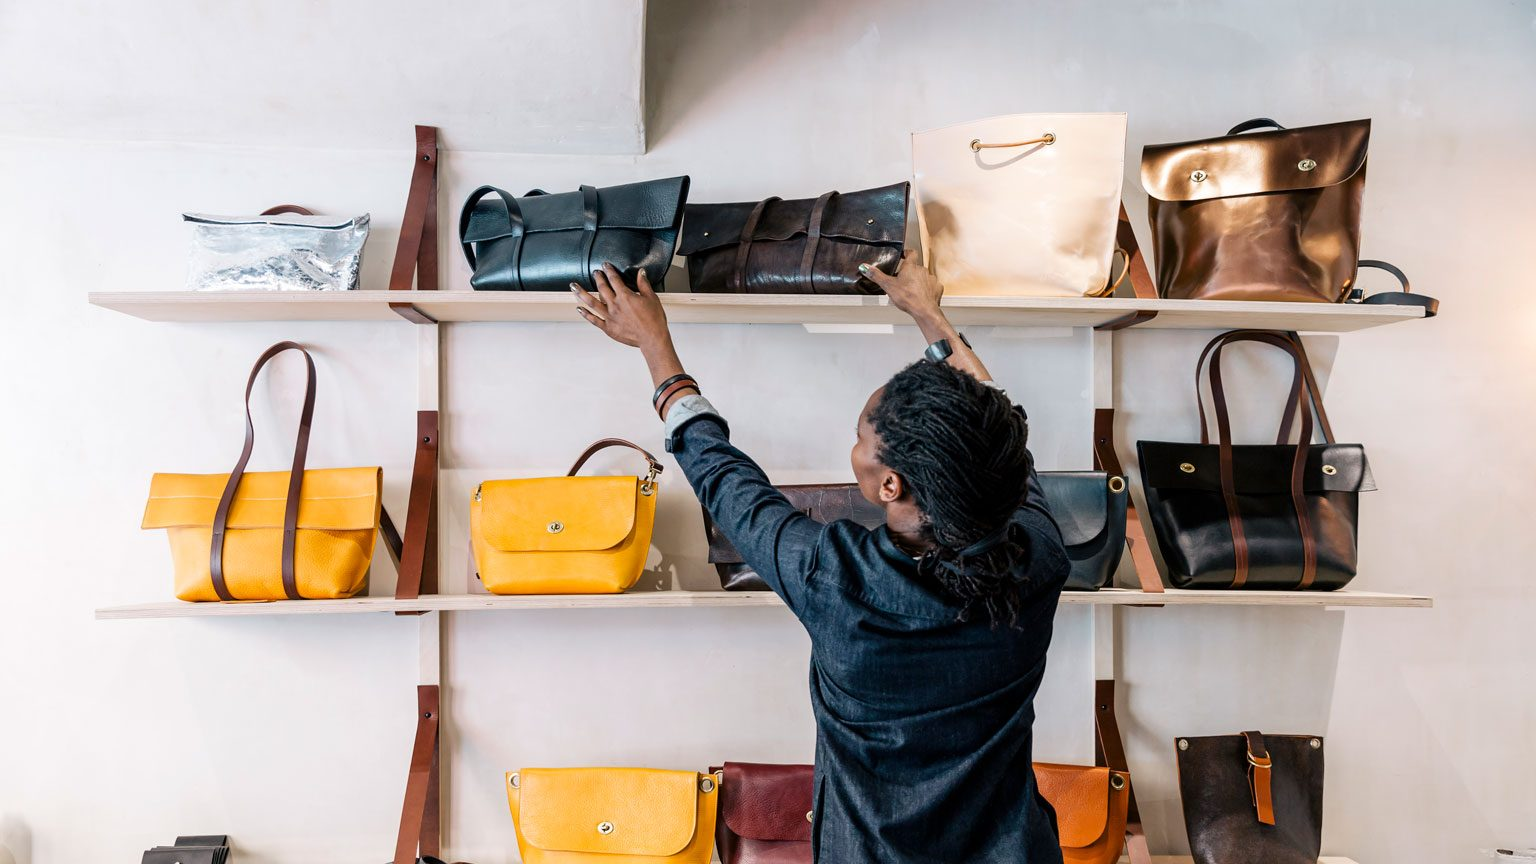 An entrepreneur handbag designer arranges her goods inside her store.